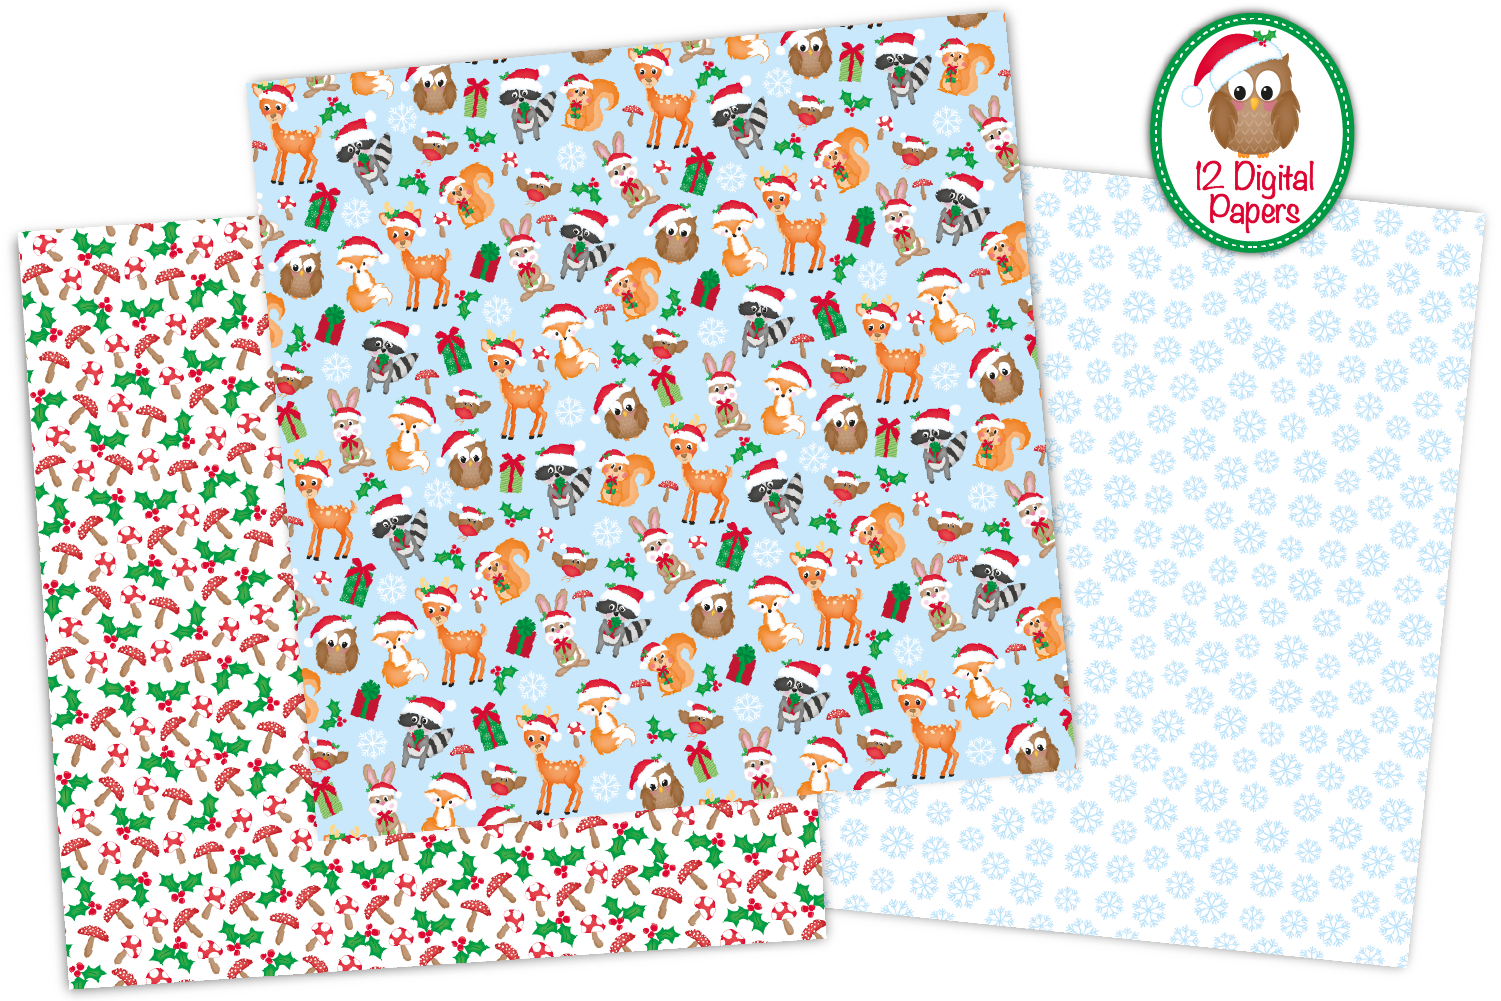 Christmas digital papers, Christmas patterns example image 2